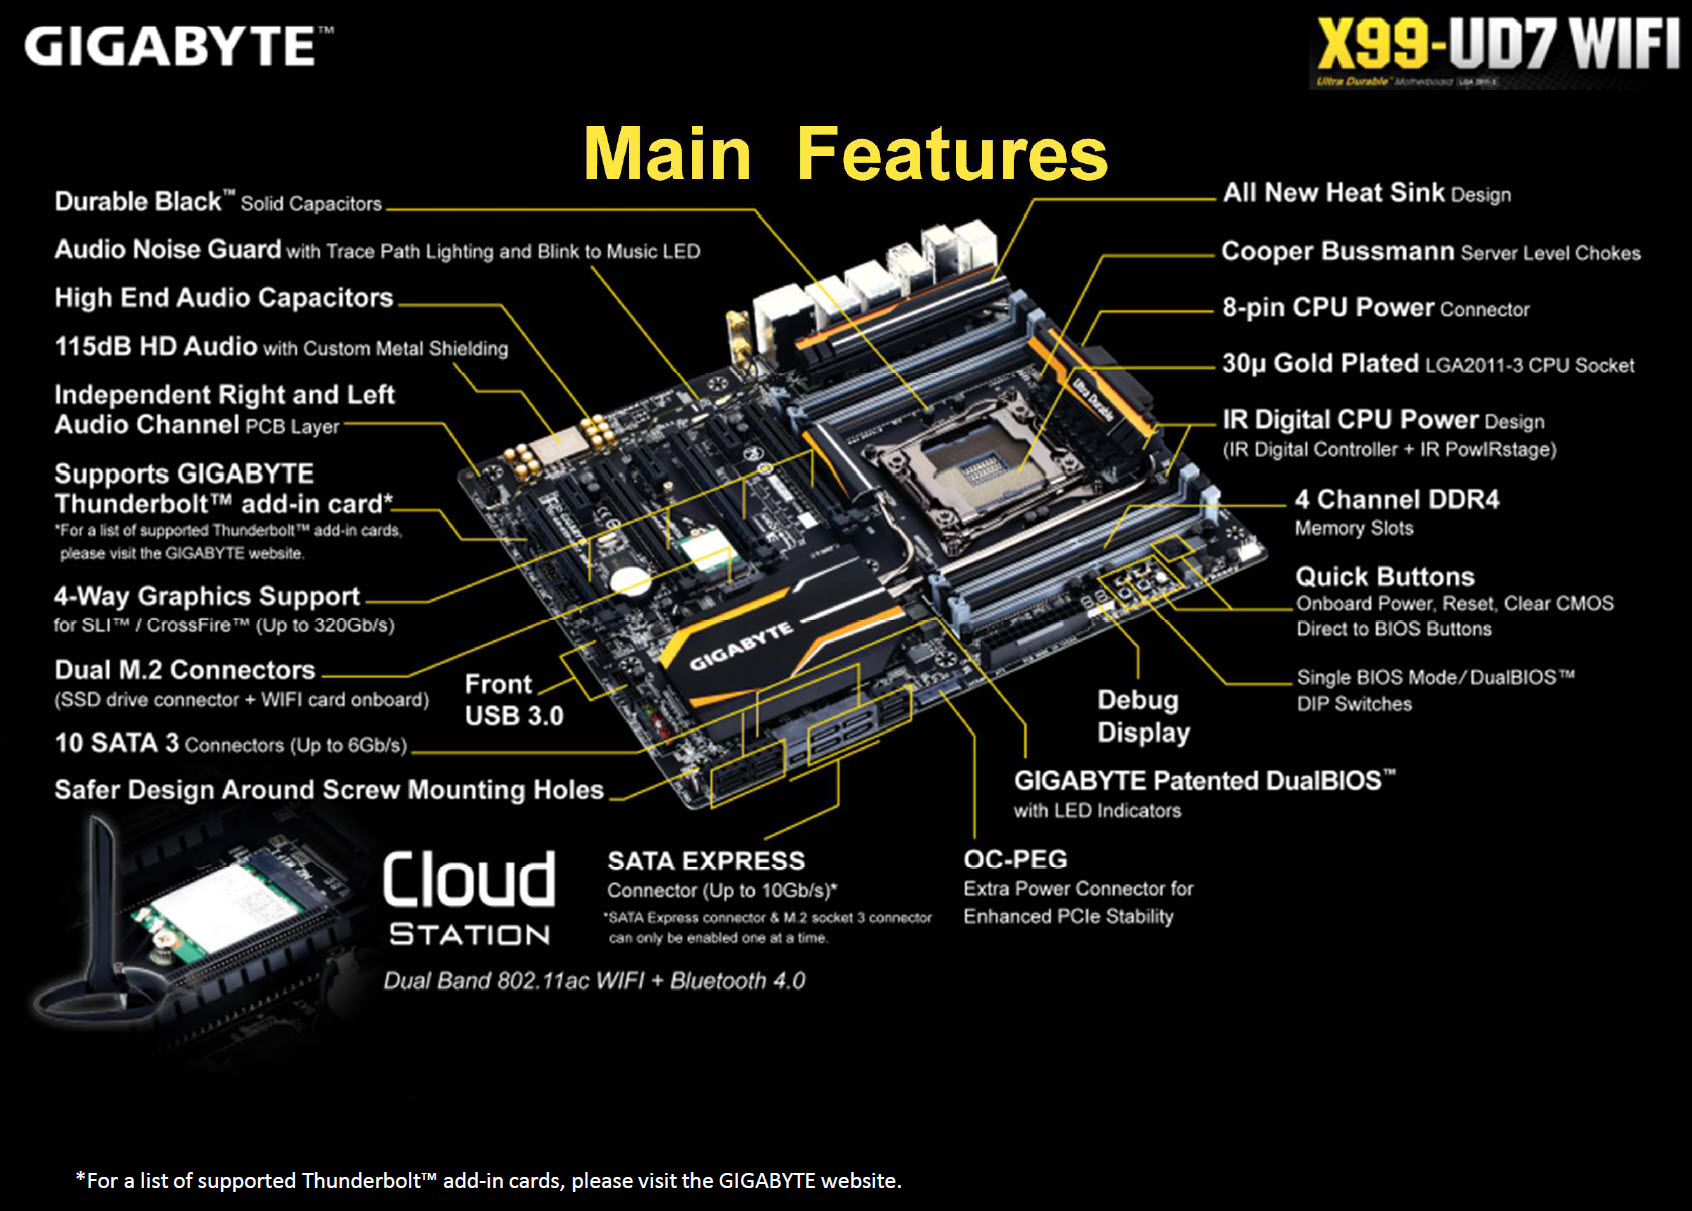 gigabyte-x99-ud7-wifi_main-features